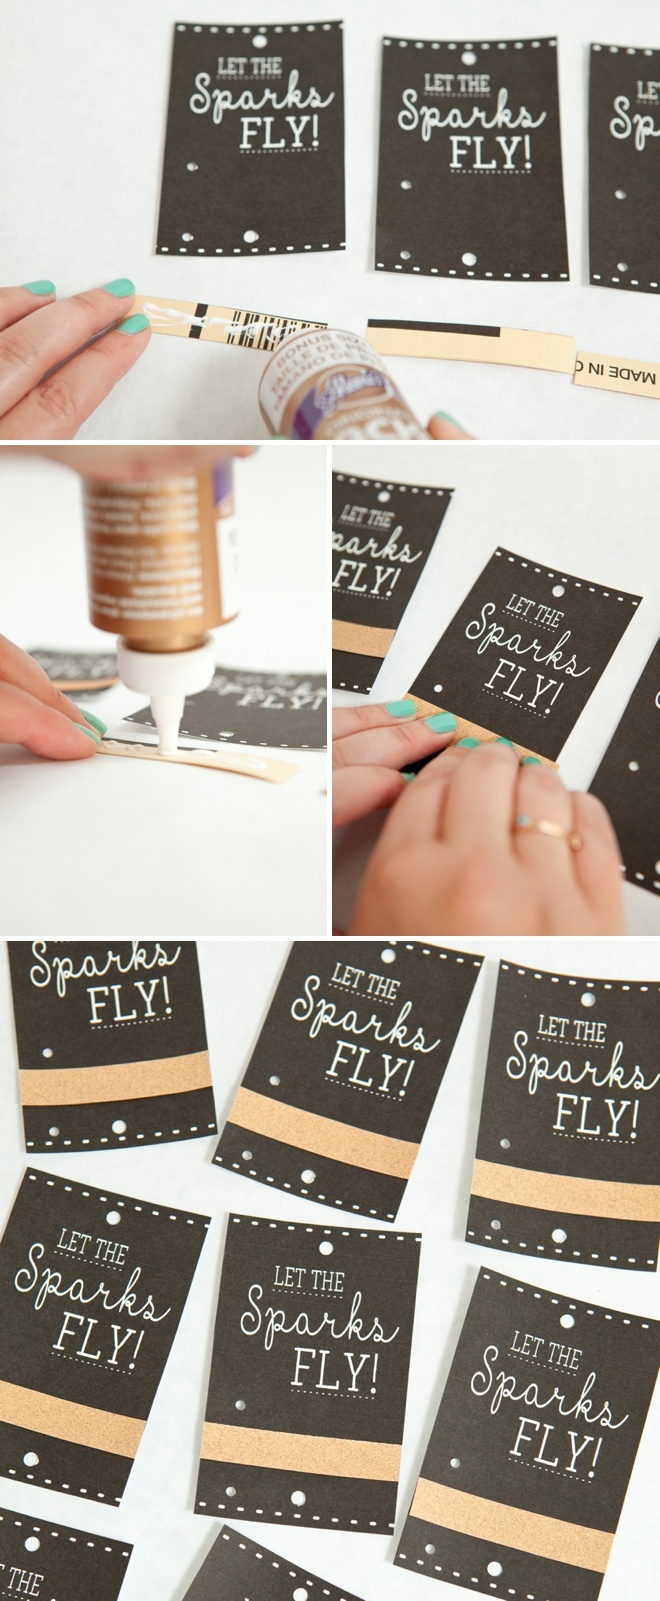 Make These Adorable Wedding Sparkler Tags + Sign For Free! - Free Printable Wedding Sparkler Sign